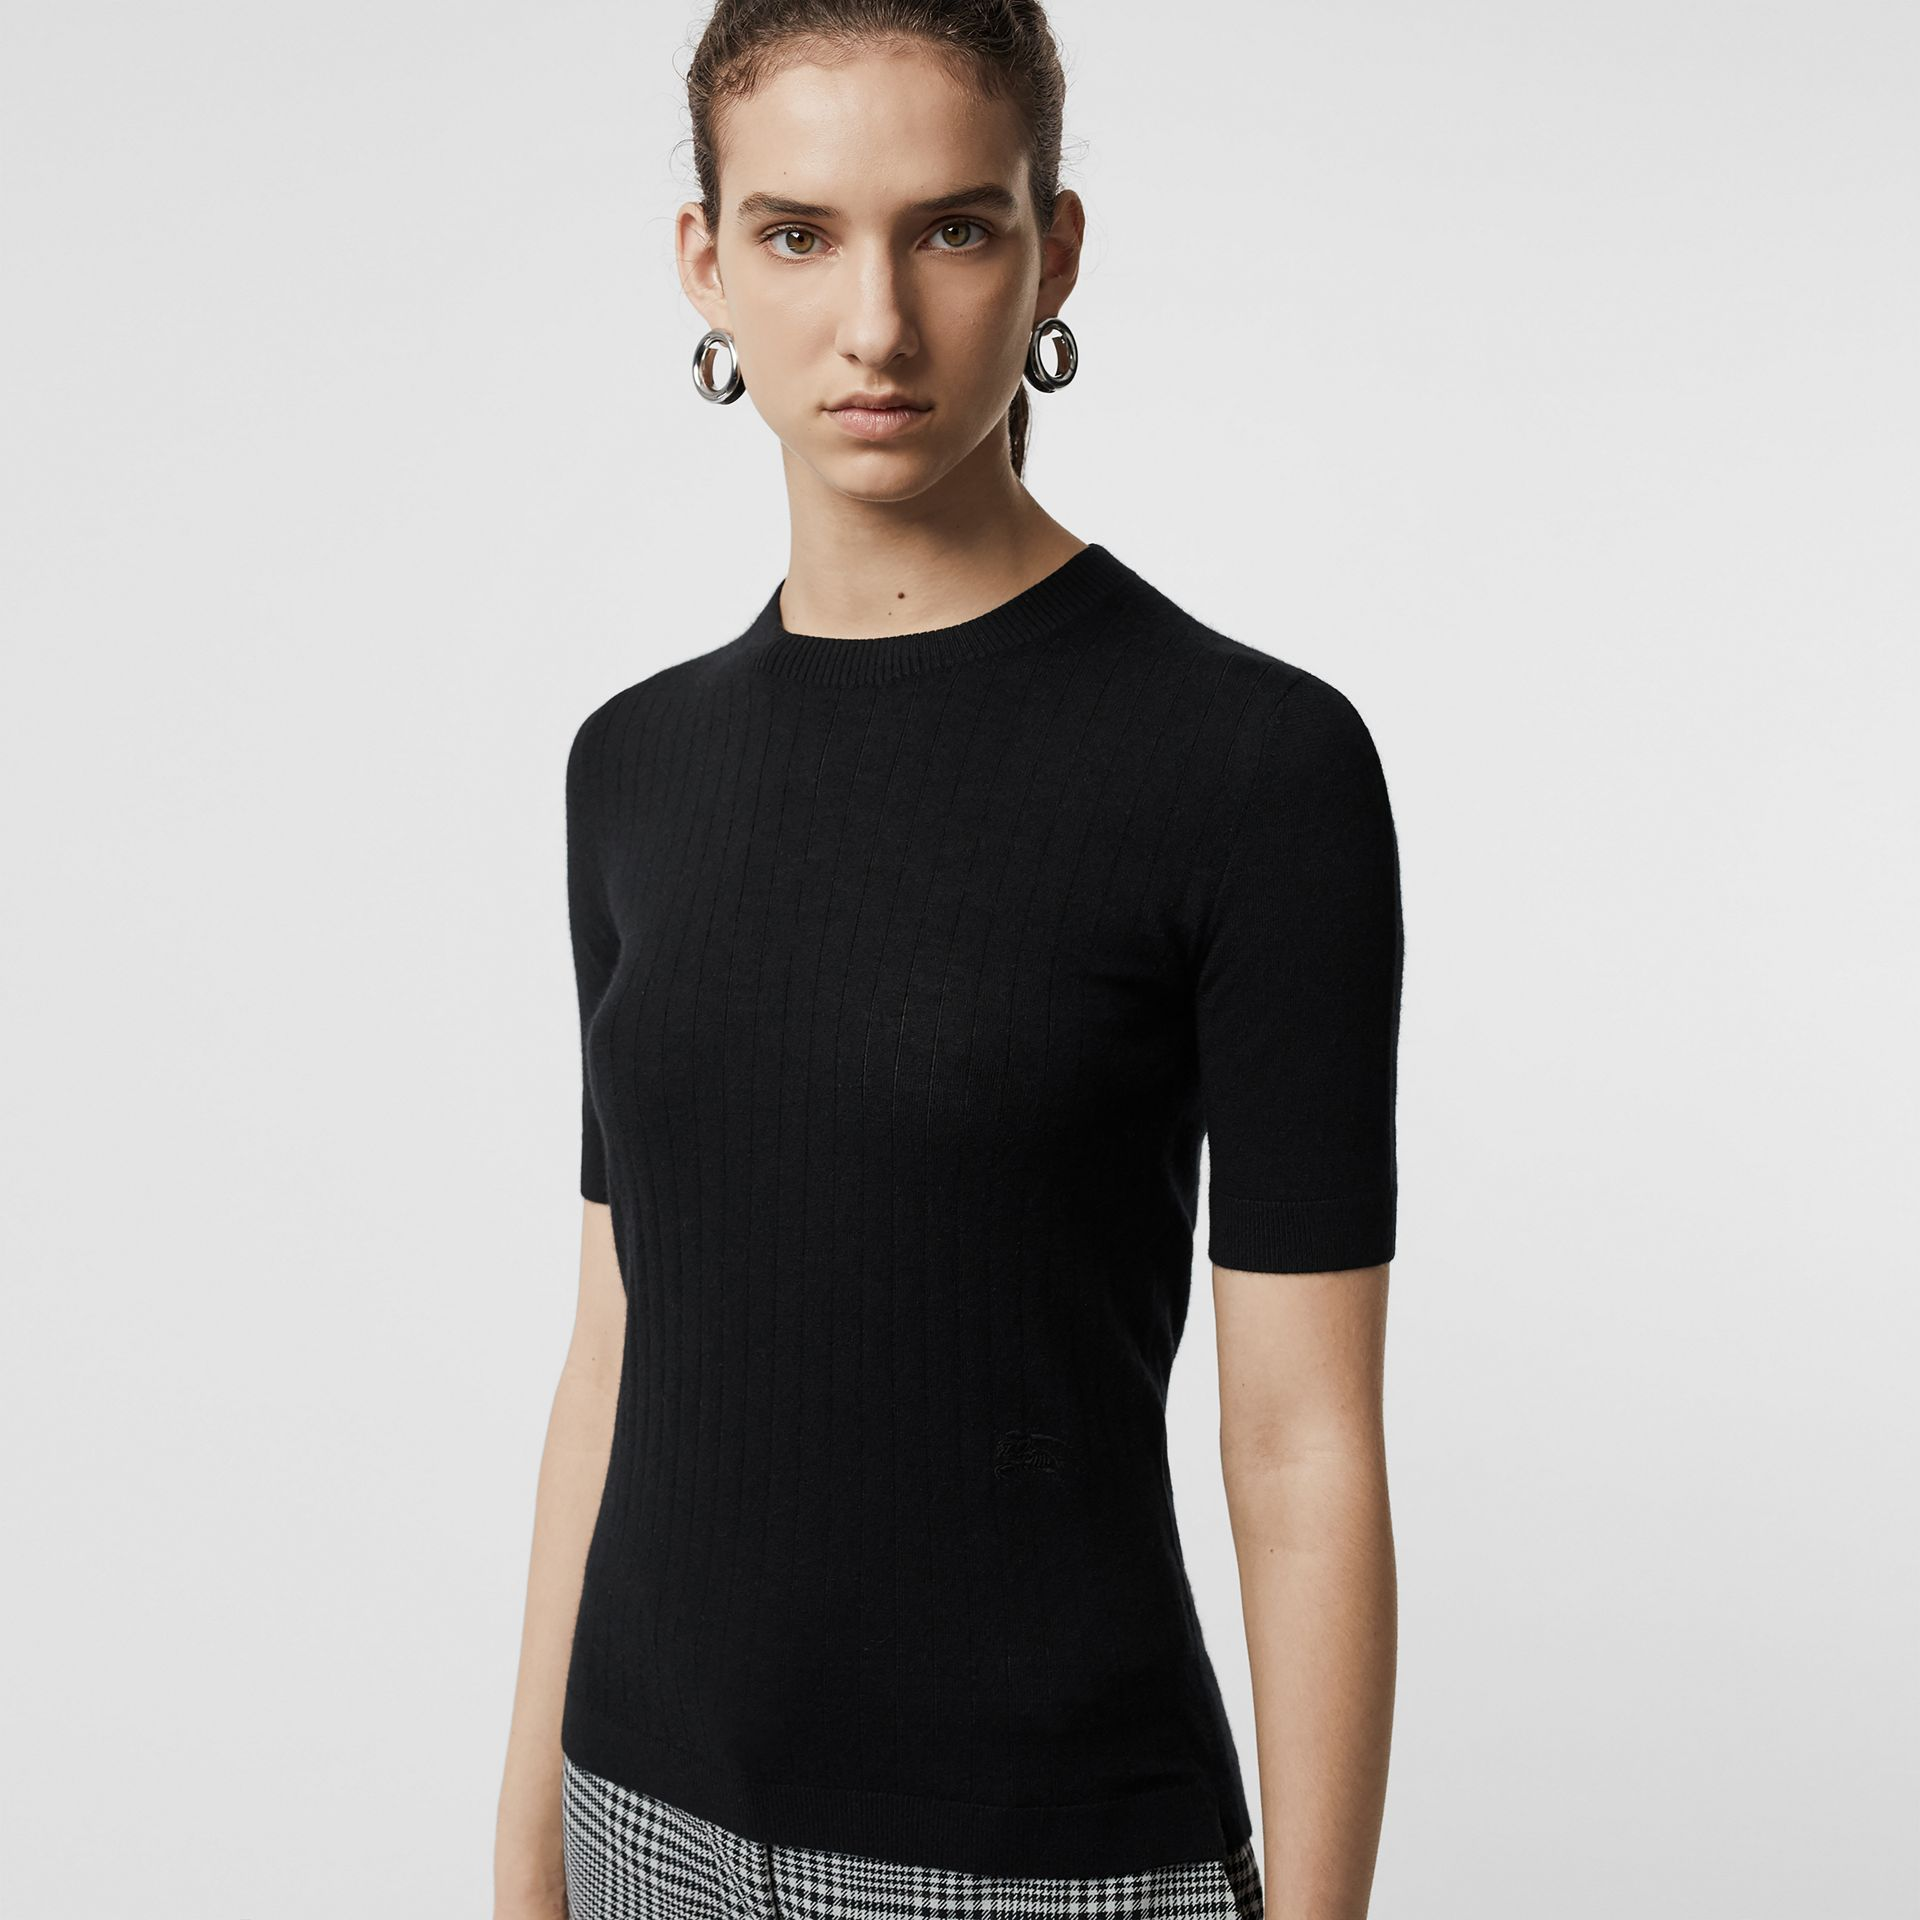 Short-sleeve Rib Knit Cashmere Sweater in Black - Women | Burberry United Kingdom - gallery image 1